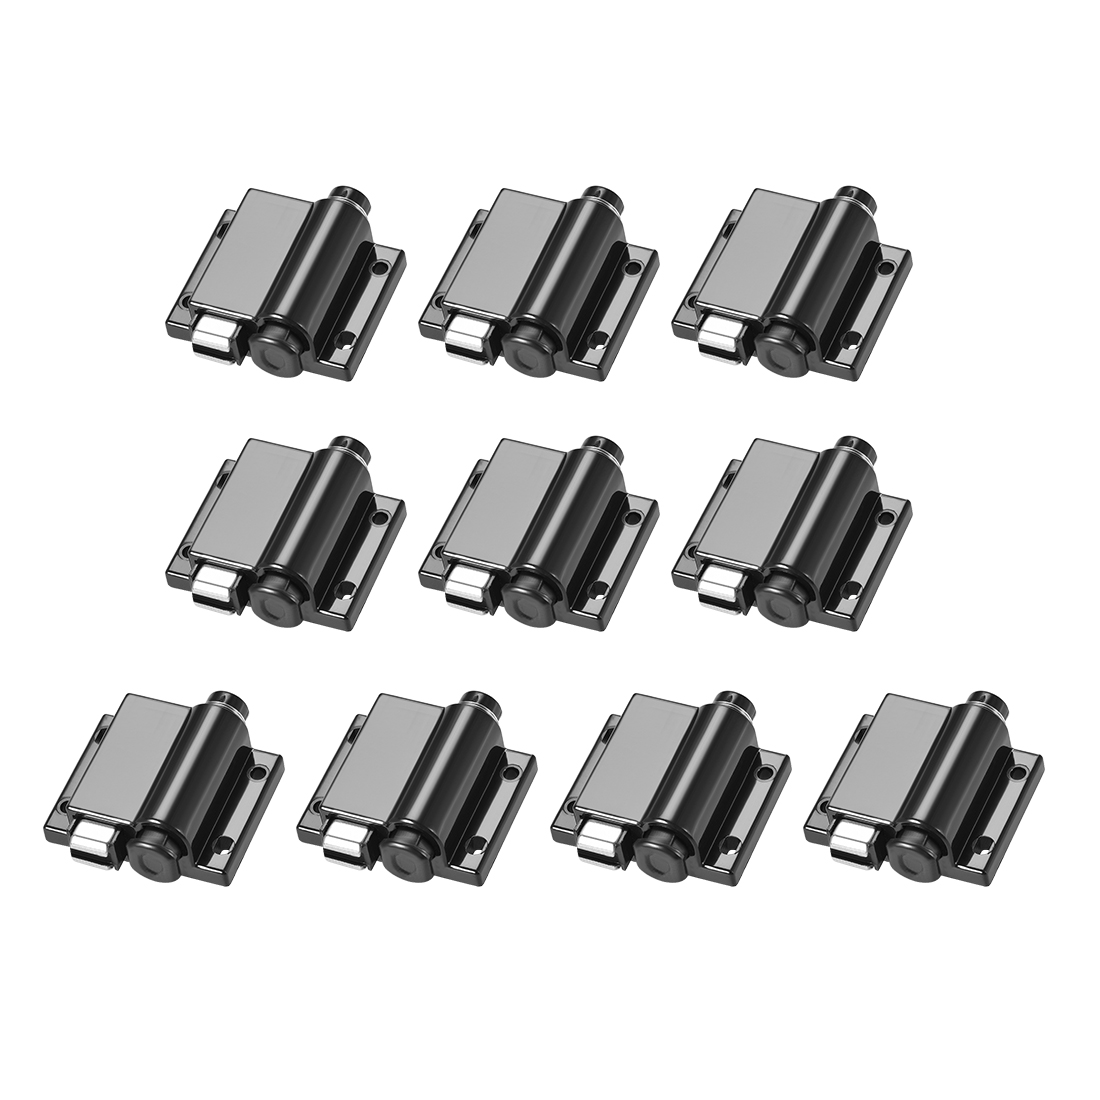 Touch Magnetic Latches Catch Latch for Cabinet Door Cupboard Black 10pcs